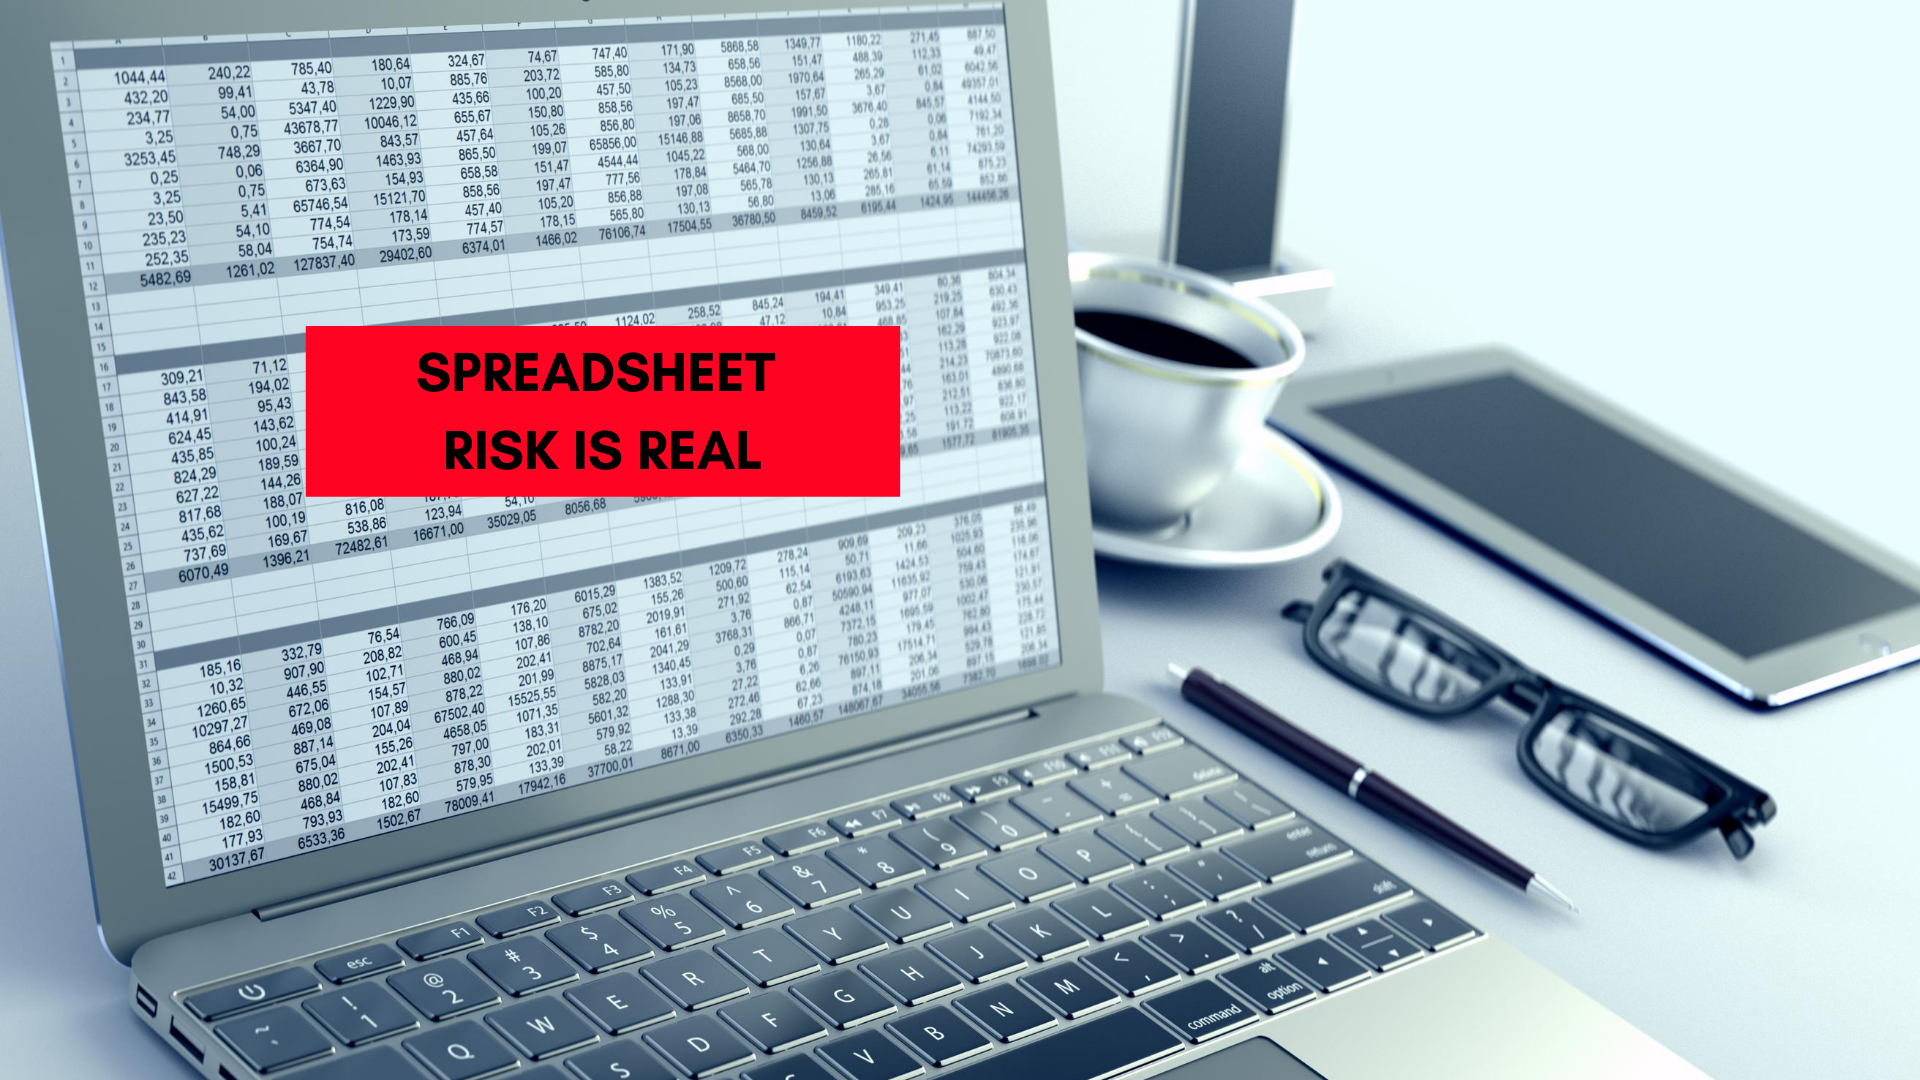 Mitigate risk with spreadsheet controls